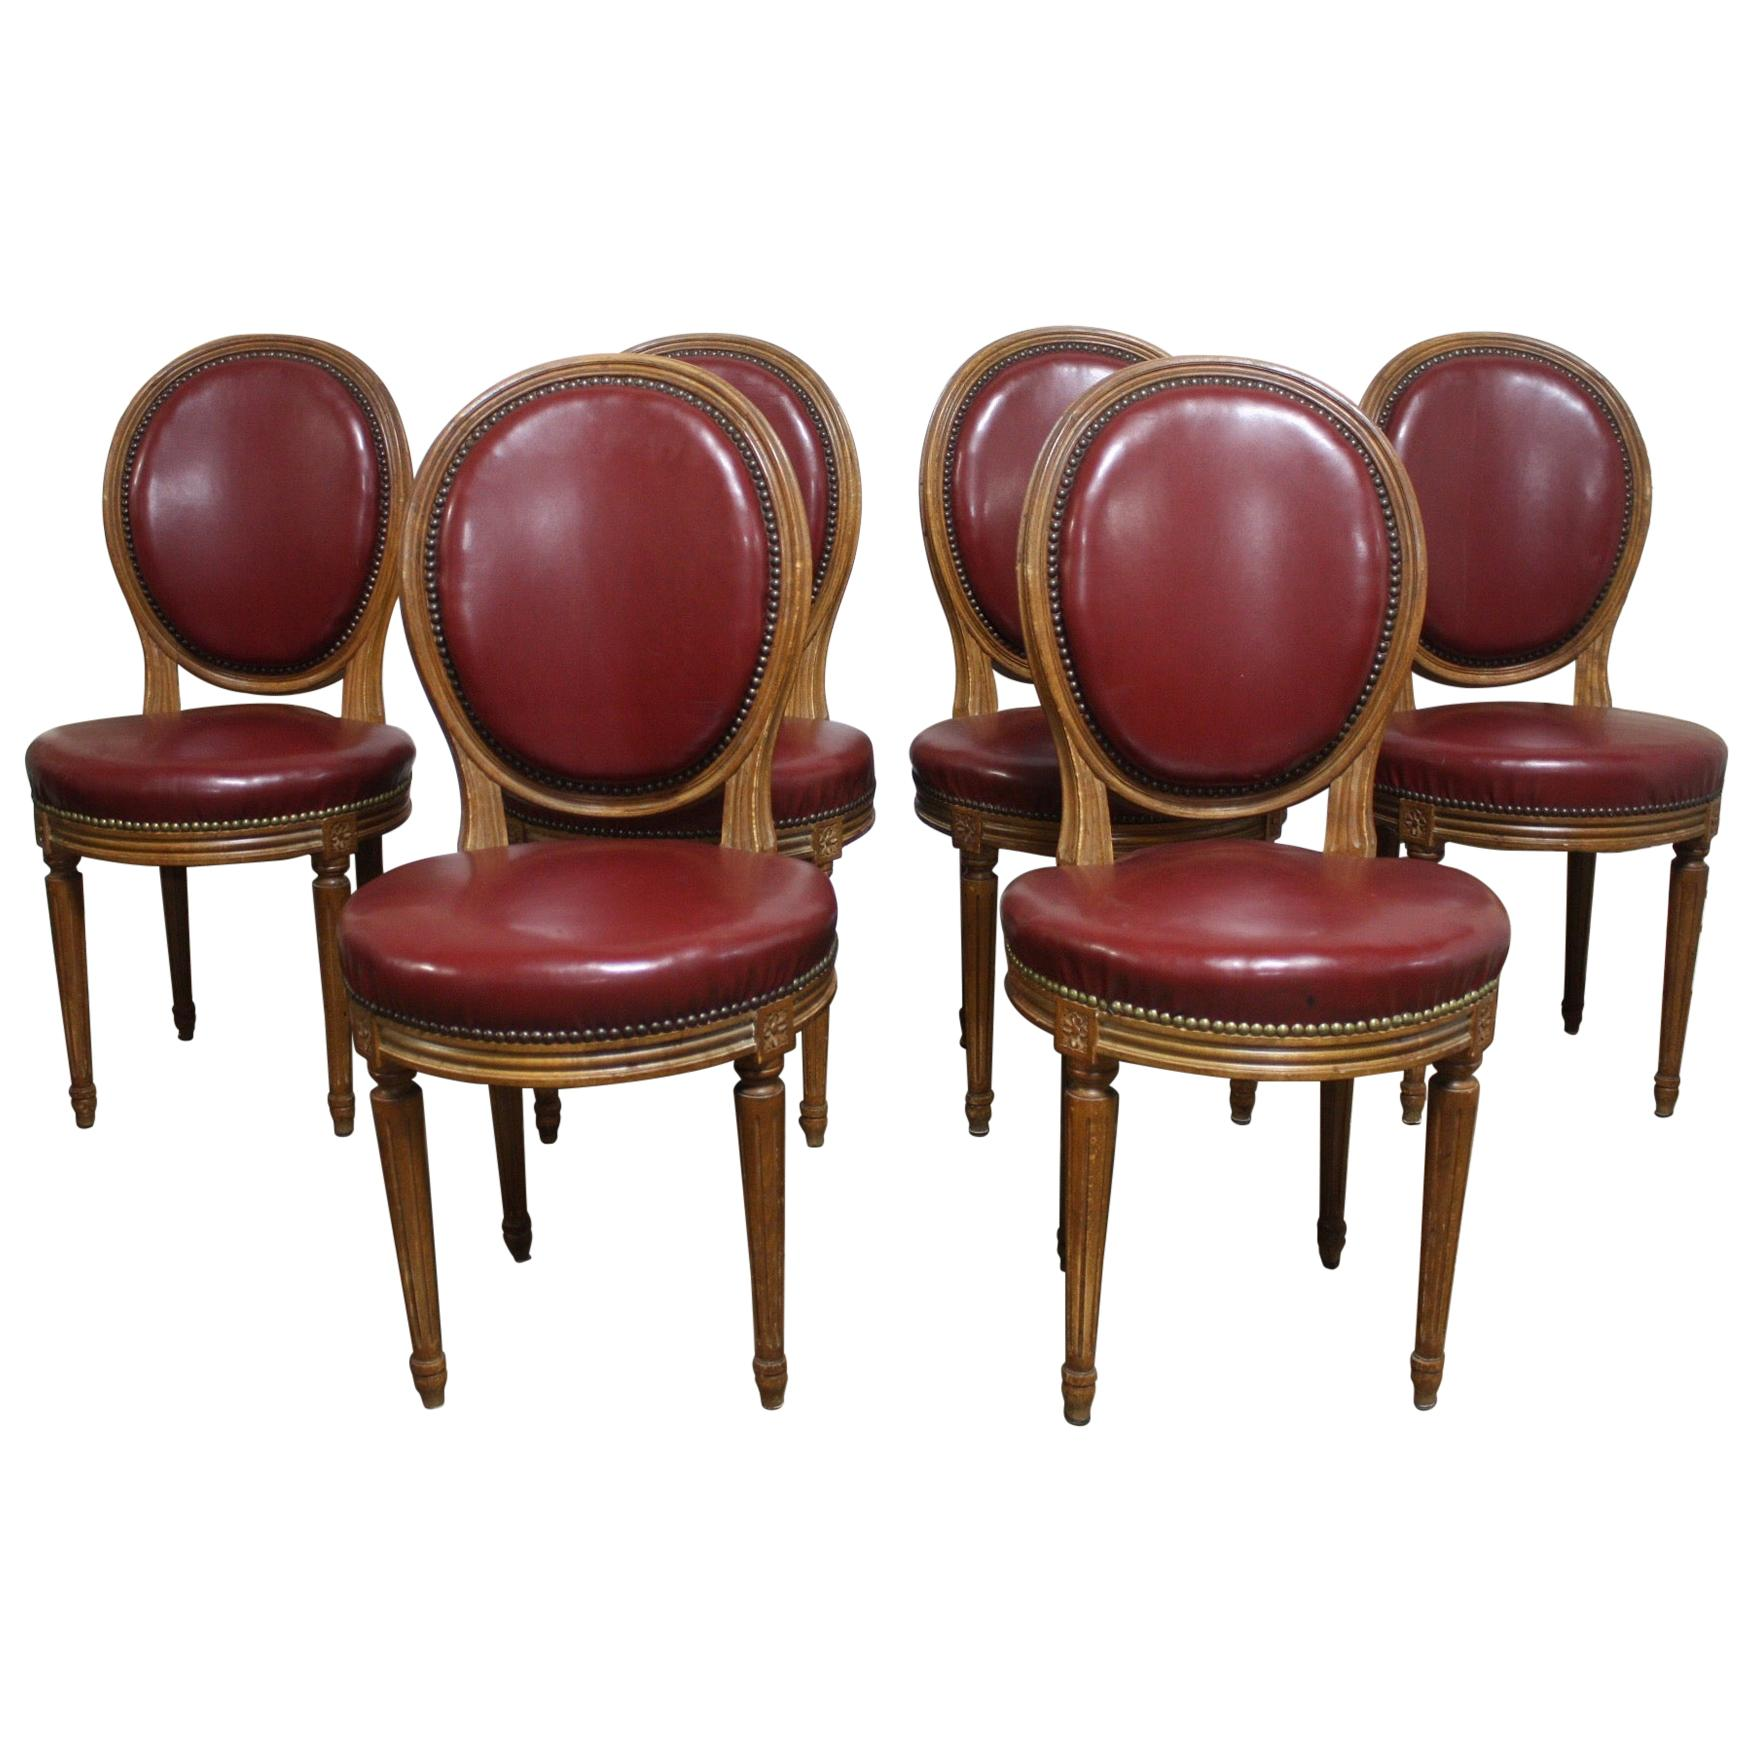 French 19th Century Set of 6 Dining Chairs